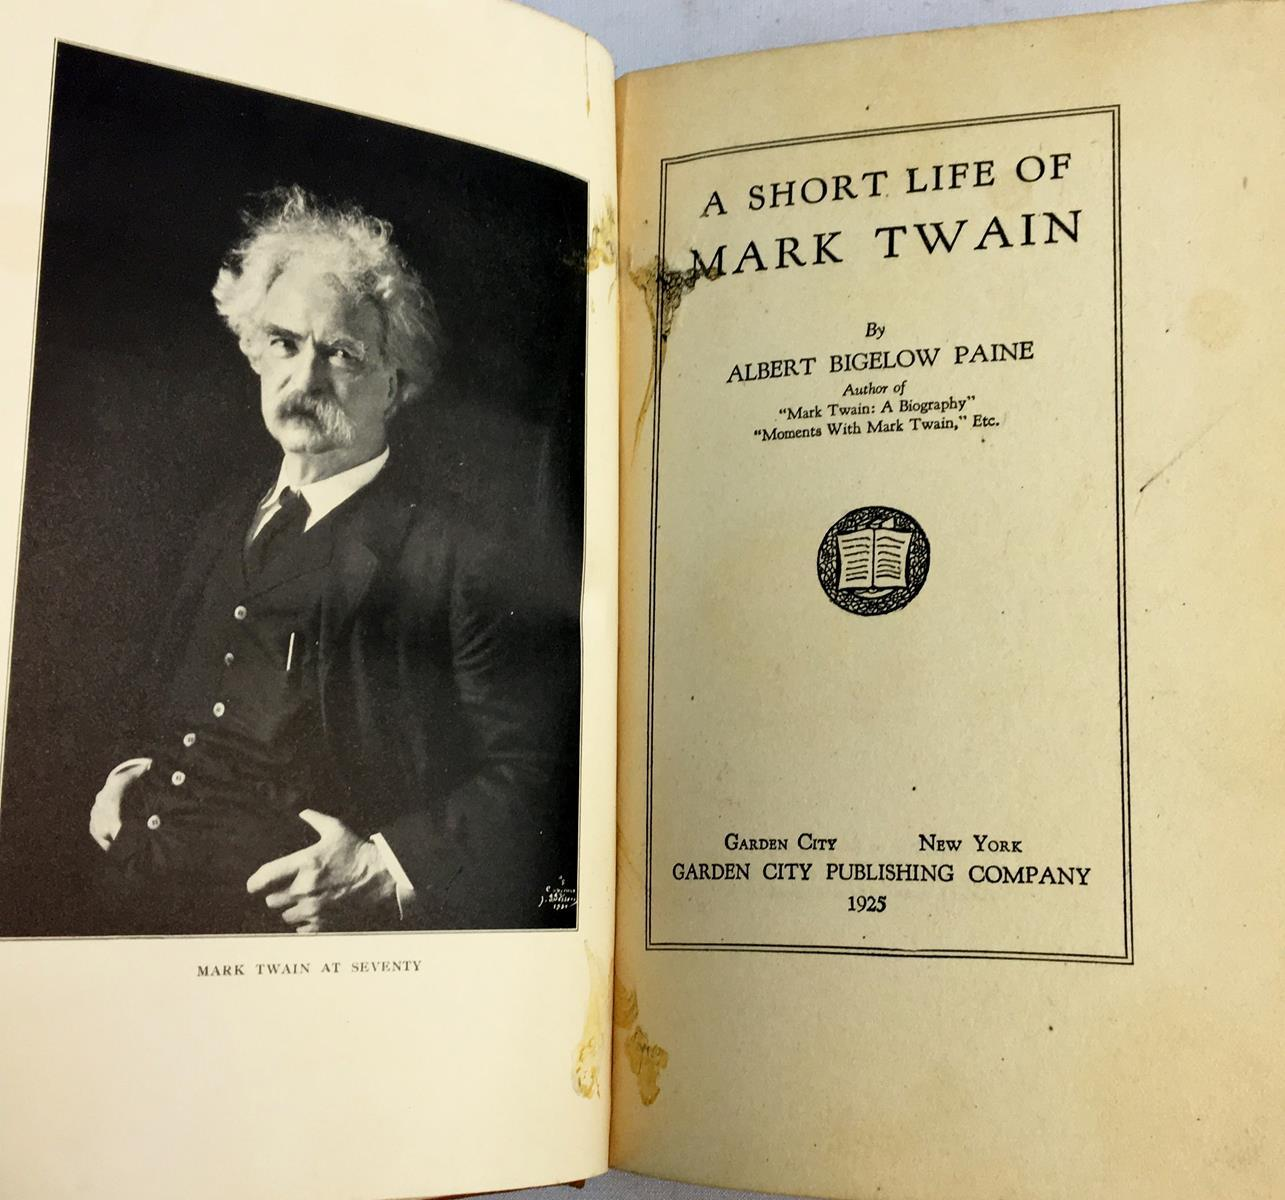 1925 A Short Life of Mark Twain by Albert Bigelow Paine ILLUSTRATED